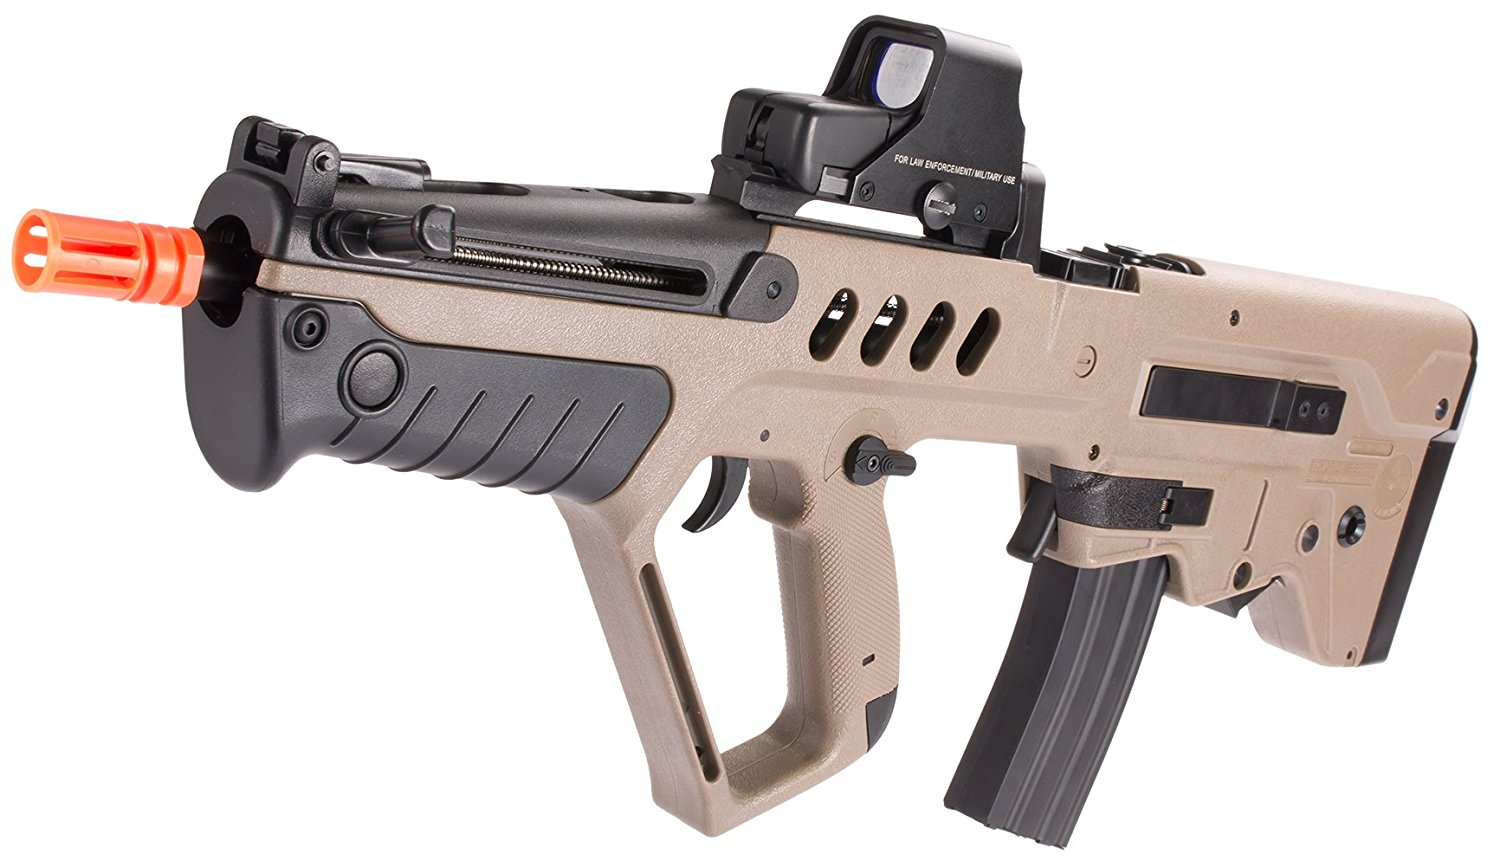 Evike IWI Licensed TAVOR TAR-21 Airsoft AEG Rifle by Umarex w/ Metal Gearbox (Dark Earth / Competition Series) - (39918)